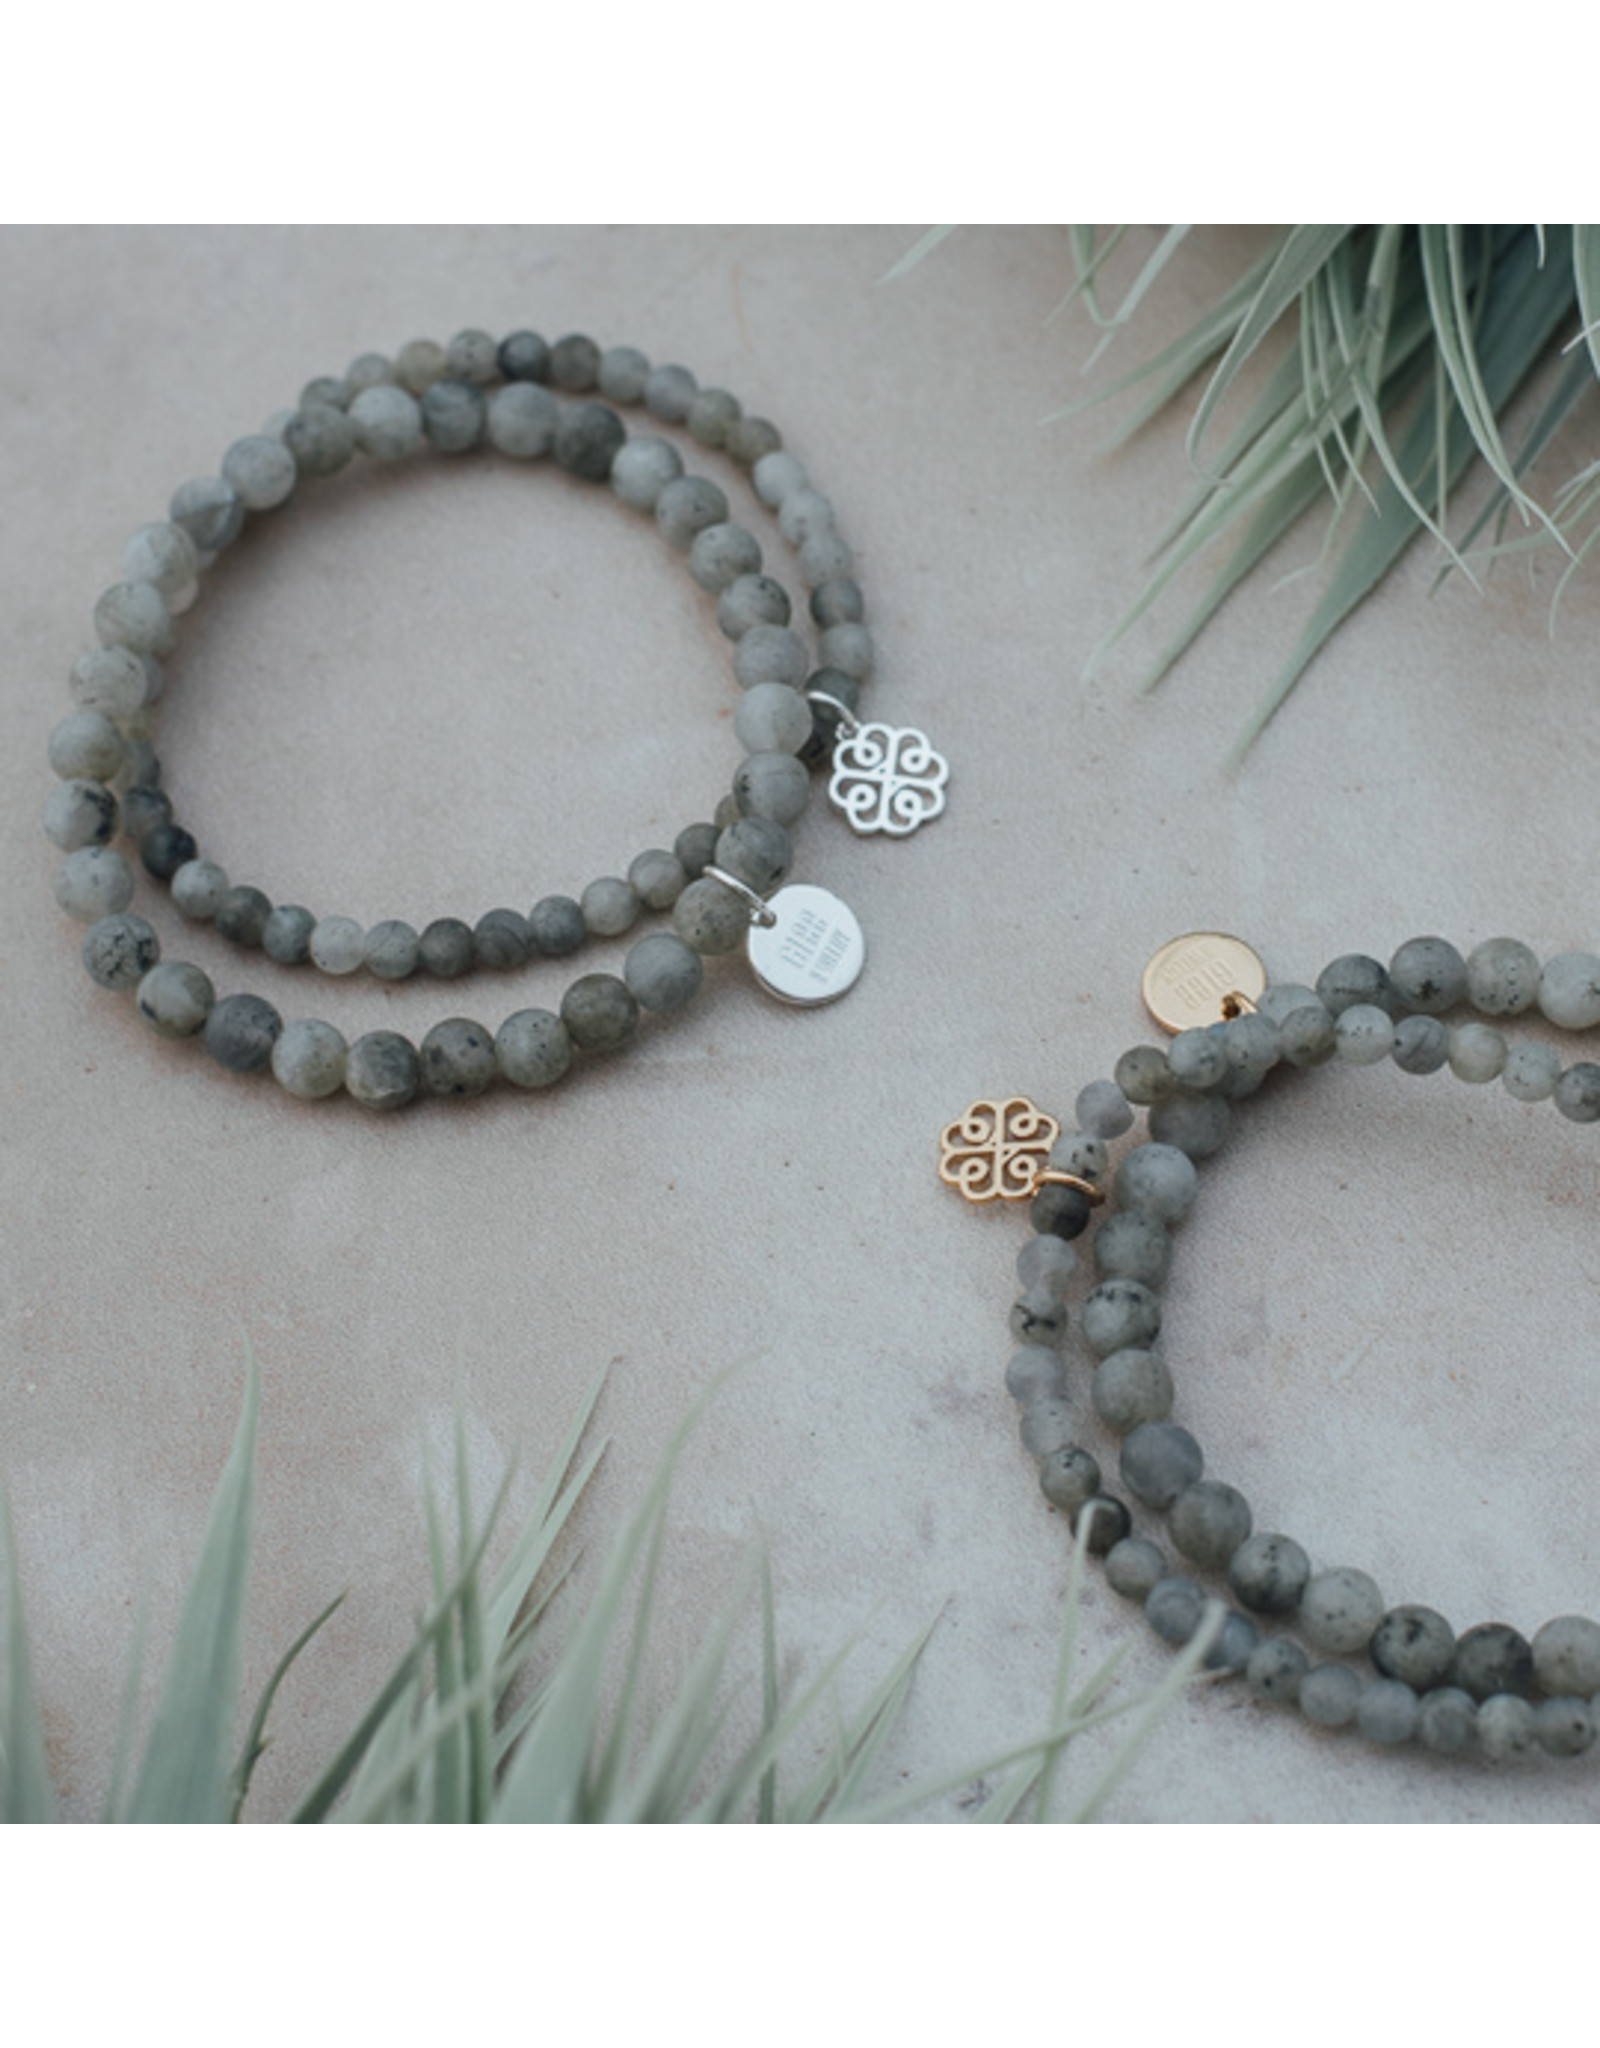 Glee - Stackem Up Bracelets - Labradorite